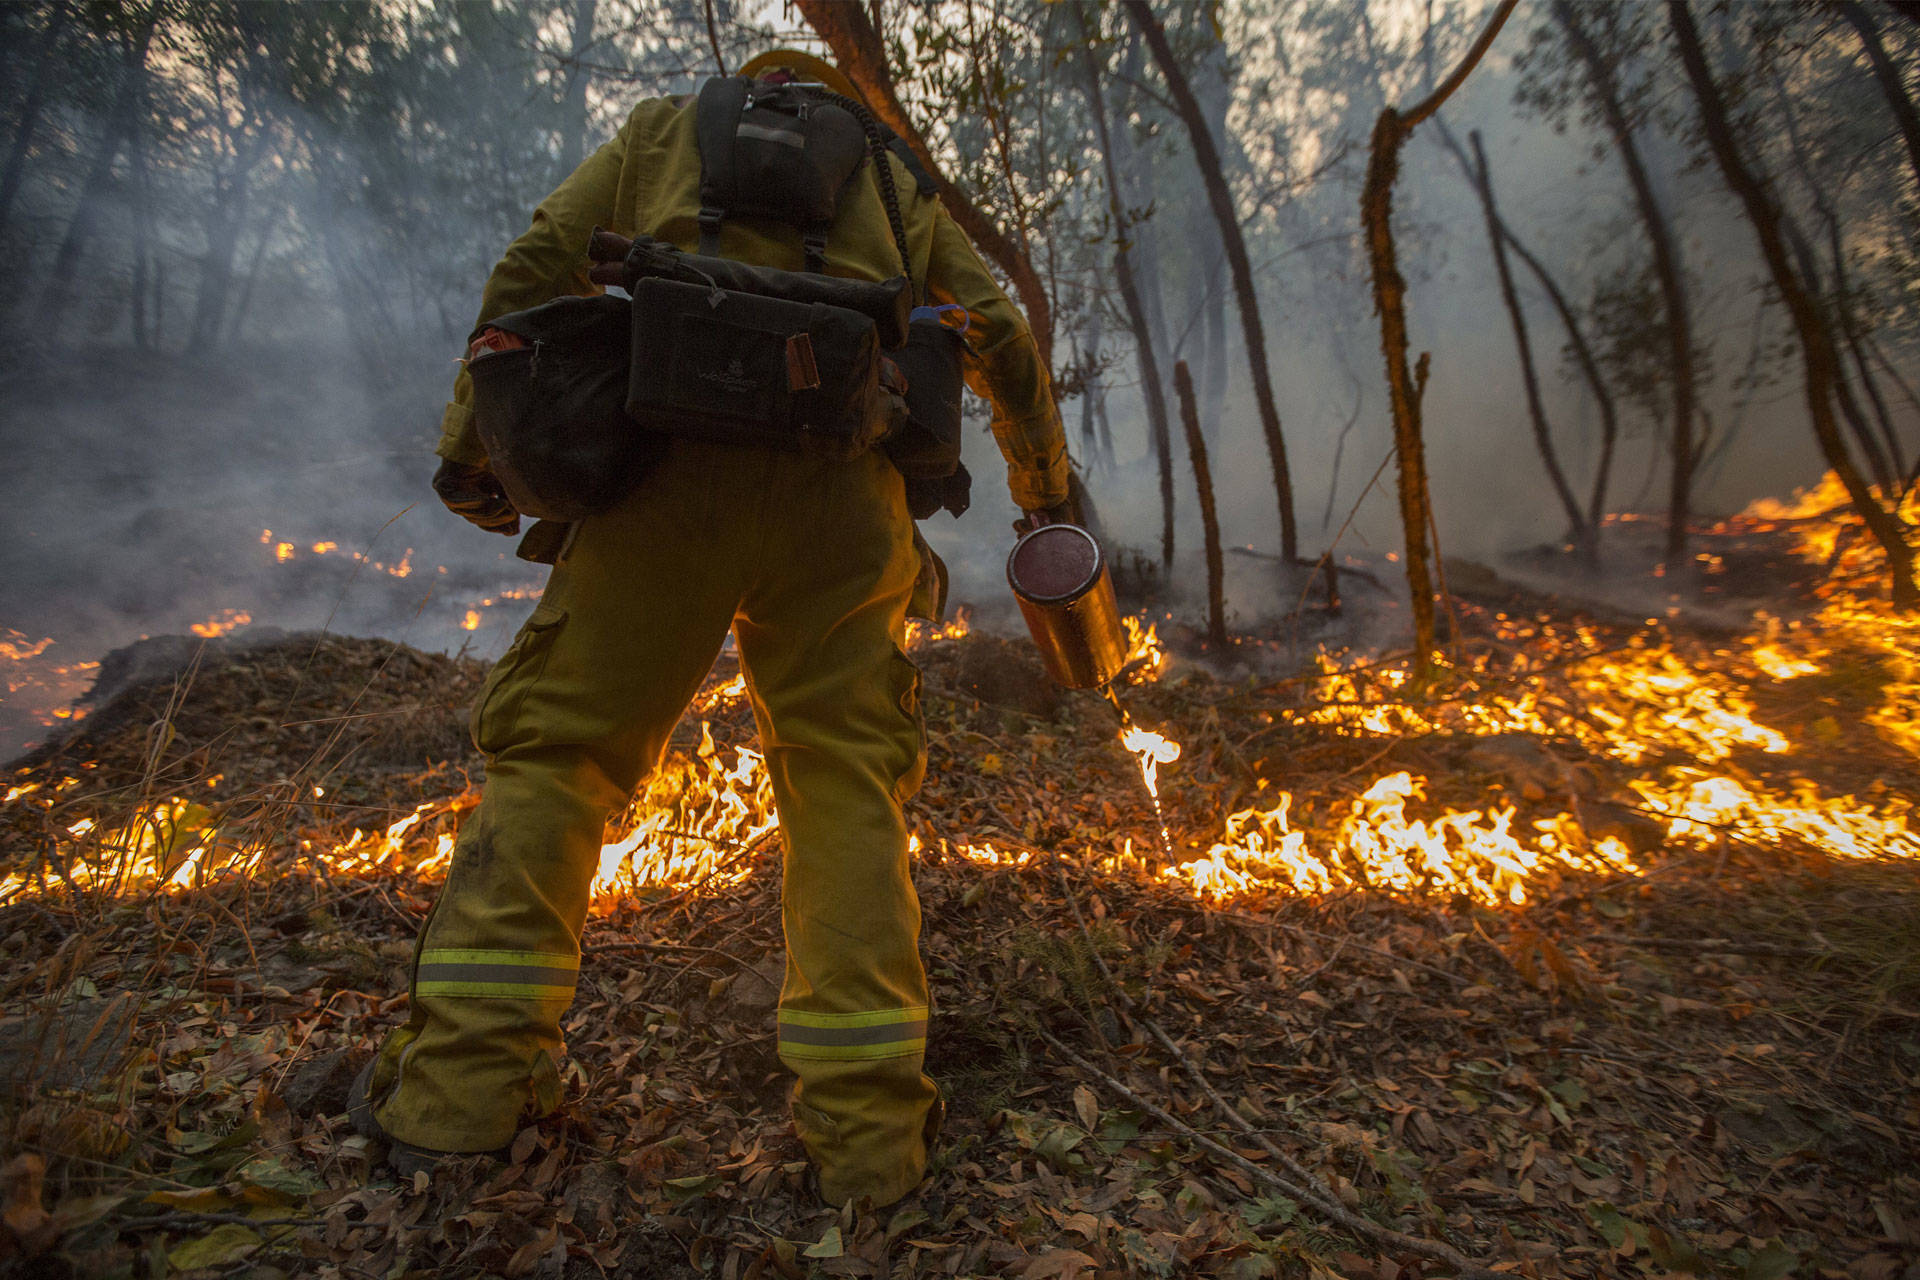 A firefighter uses a drip torch to set a backfire to protect houses in Adobe Canyon during the Nuns Fire on October 15, 2017 near Santa Rosa. David McNew/Getty Images